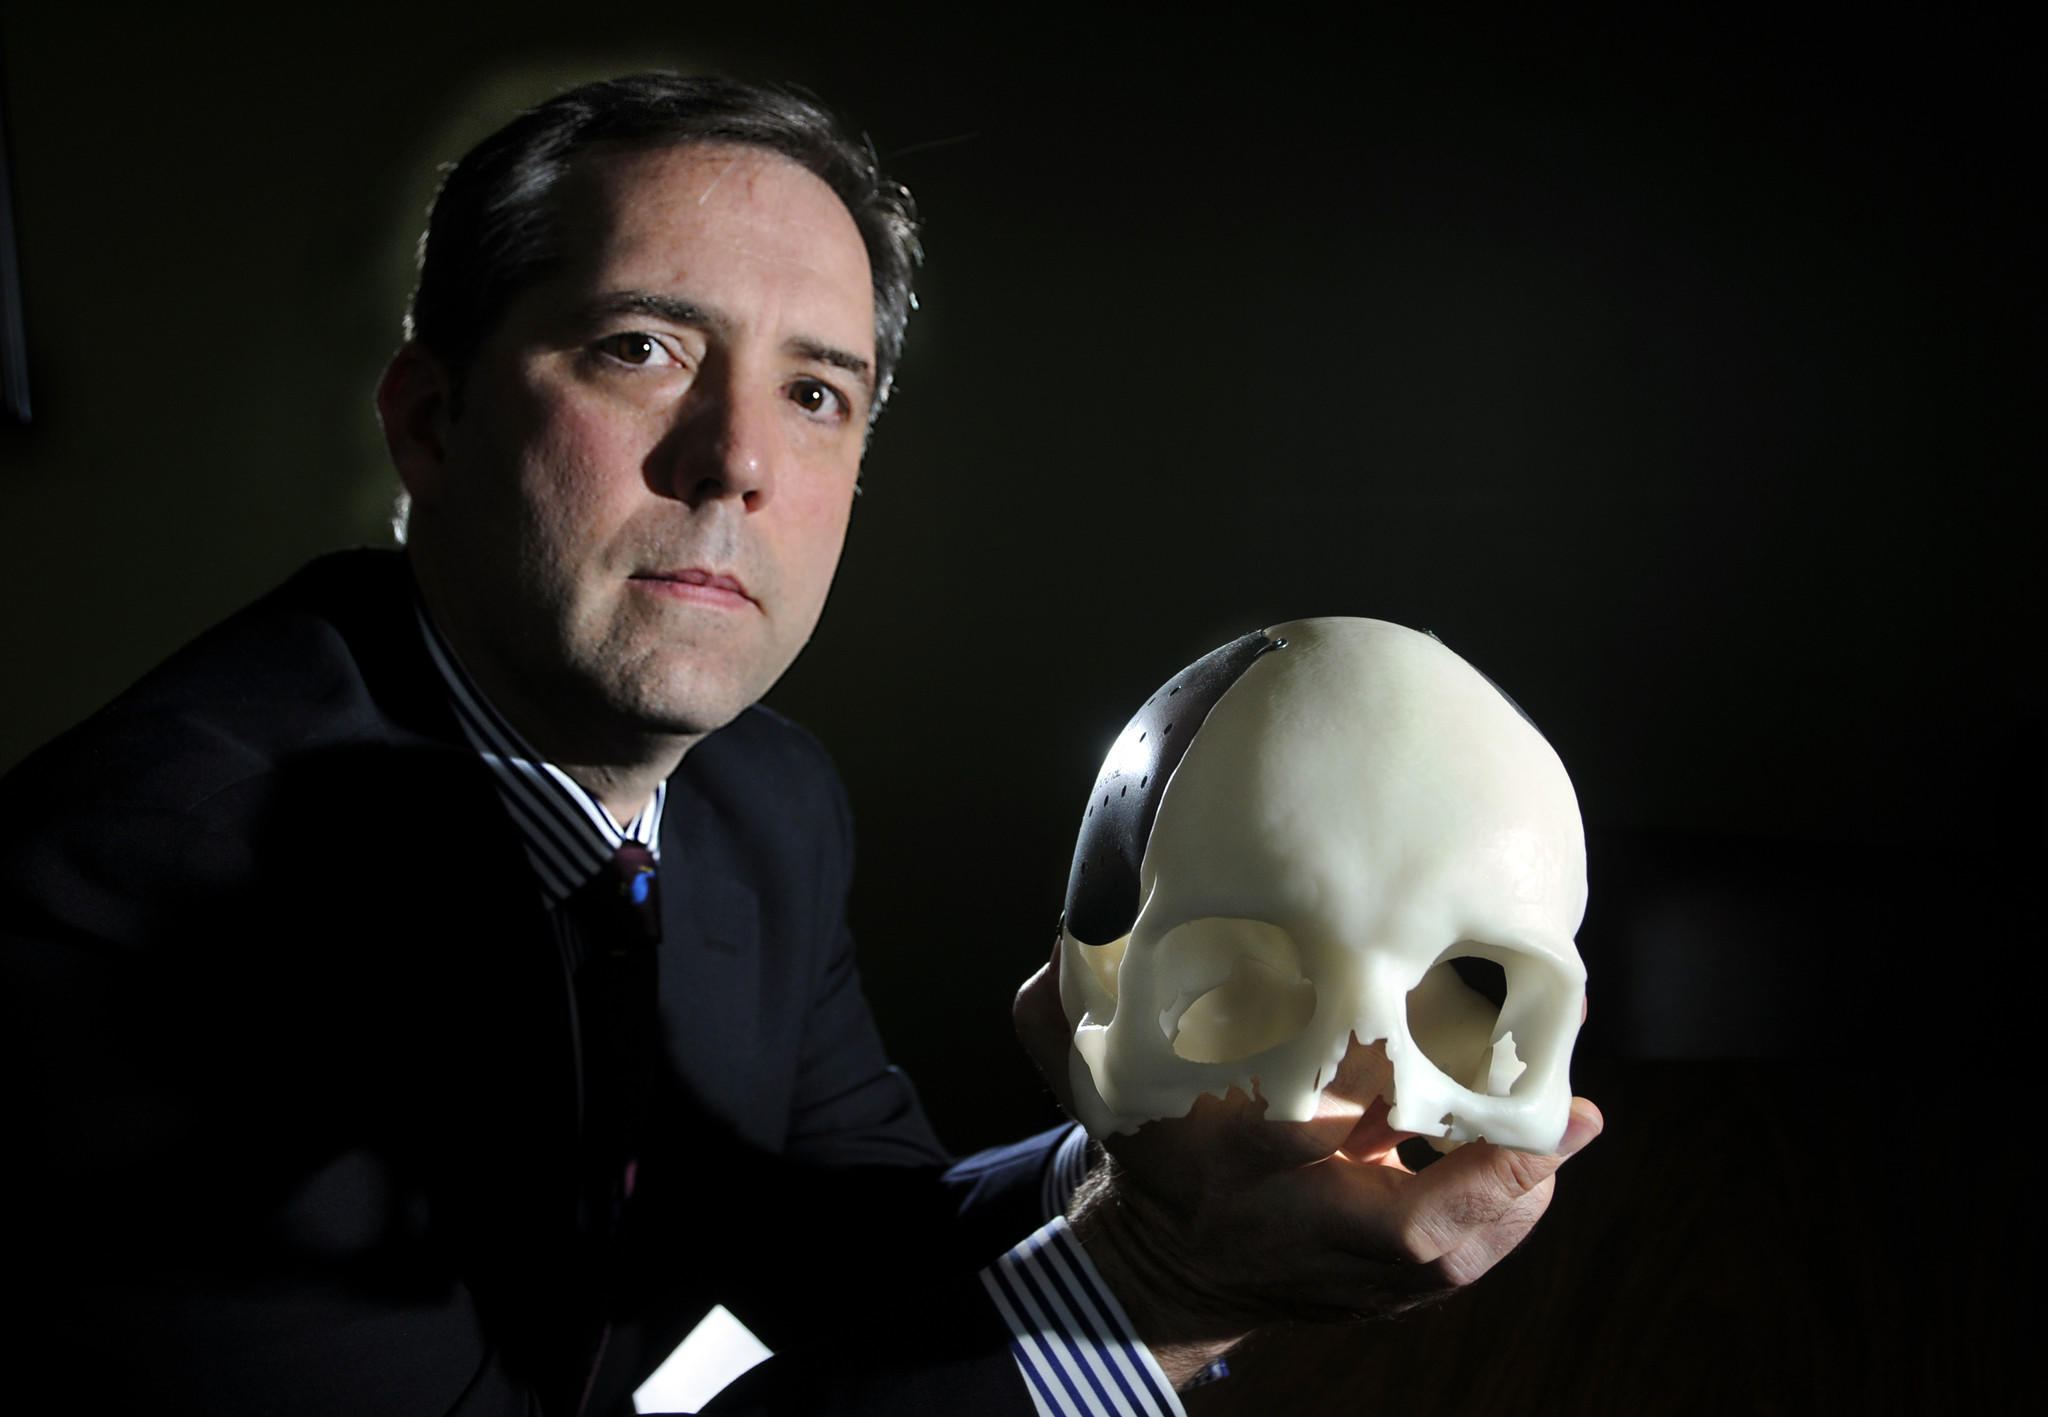 Tennyson Anthony is president and CEO of Kelyniam Global, a small engineering/manufacturing firm that makes custom skull implants. Anthony is holding an example of one of their implants on a model of a skull used for fitting.